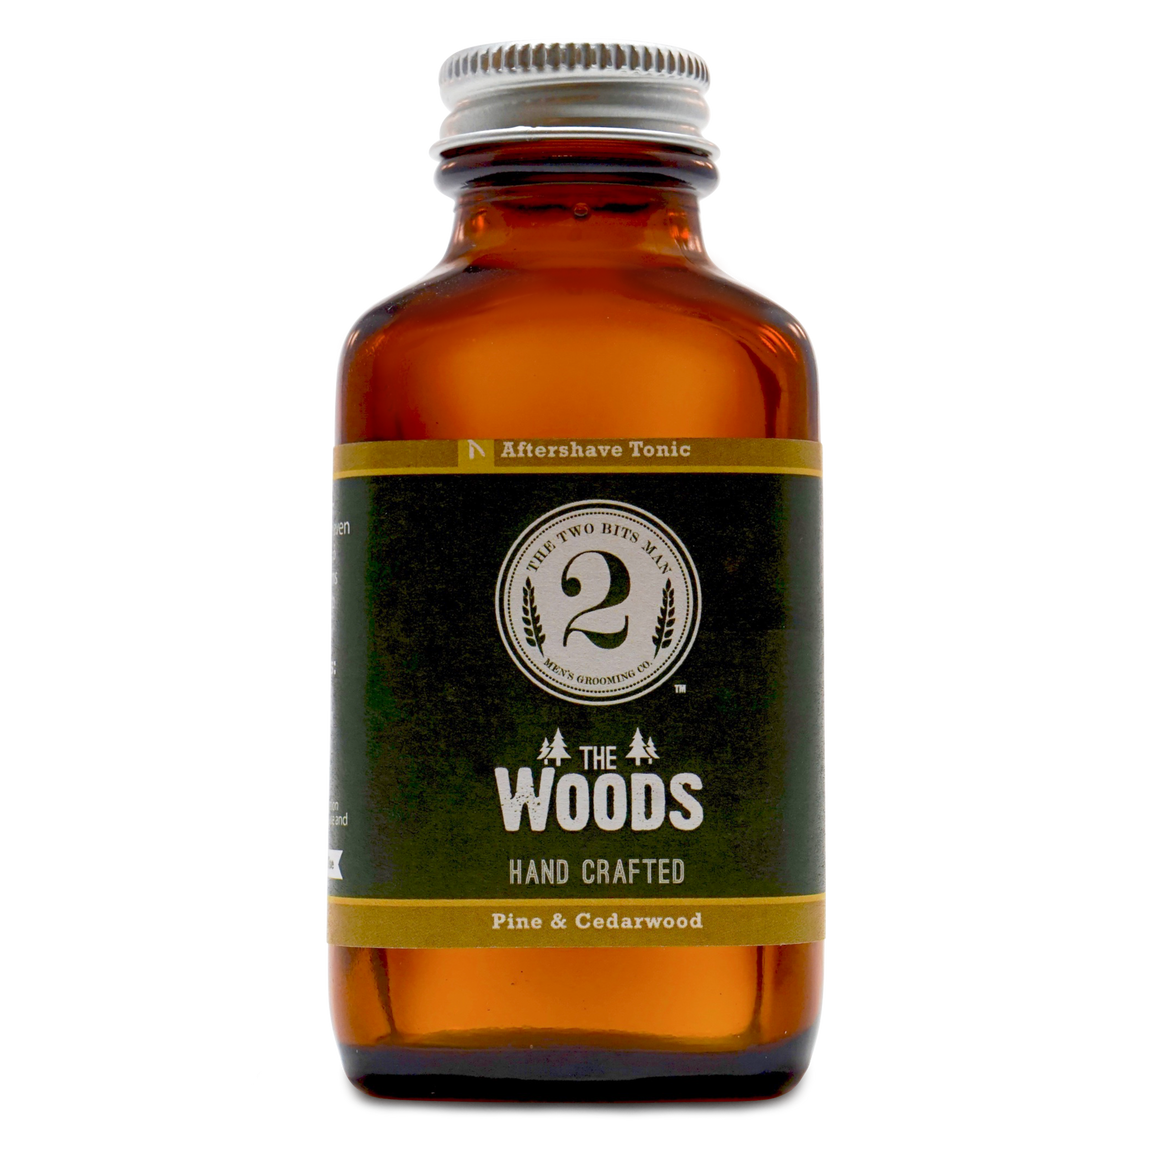 The Woods - Aftershave Tonic - The 2 Bits Man